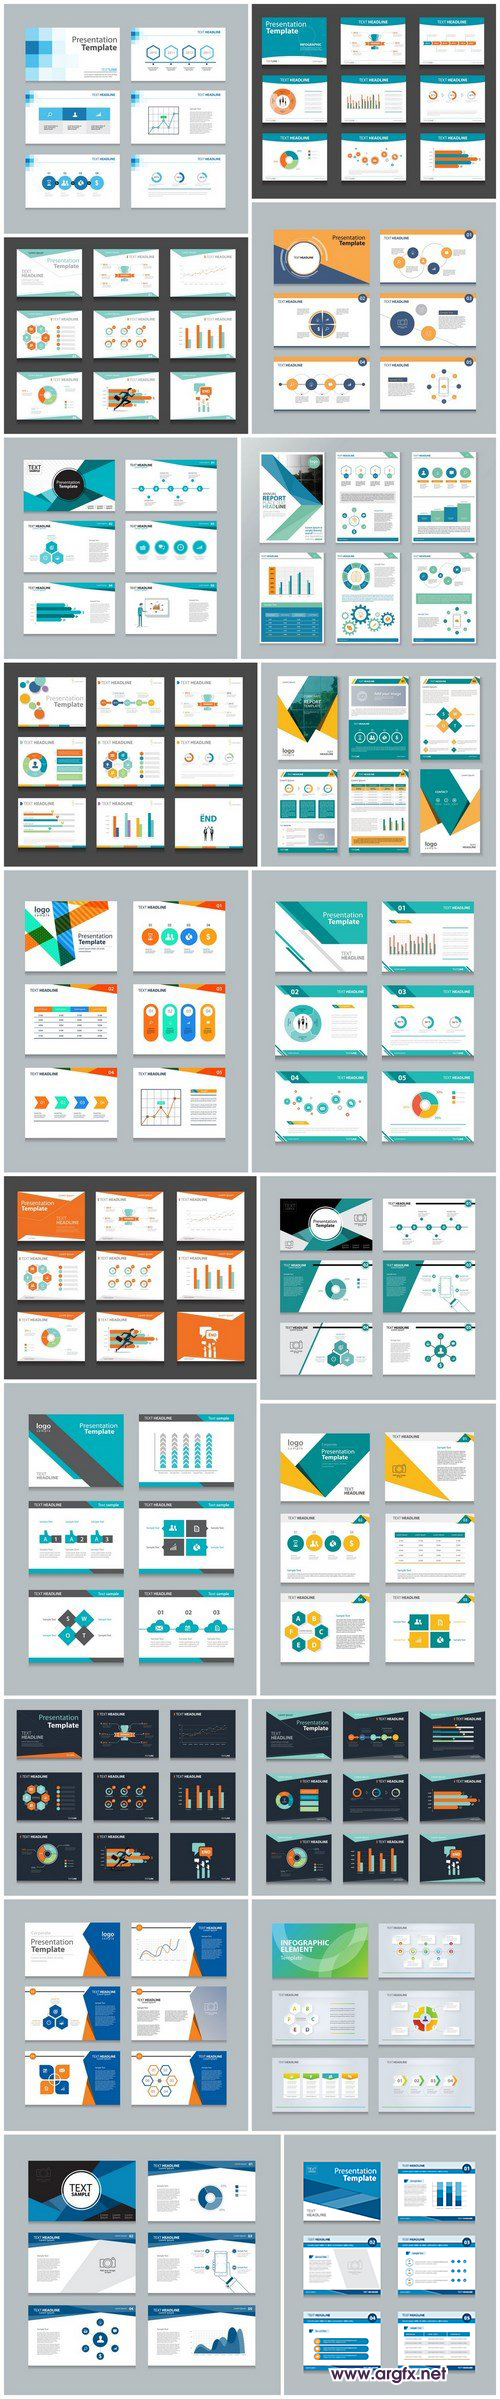 Corporate Presentation & Polygon Infographic 2 - 20xEPS